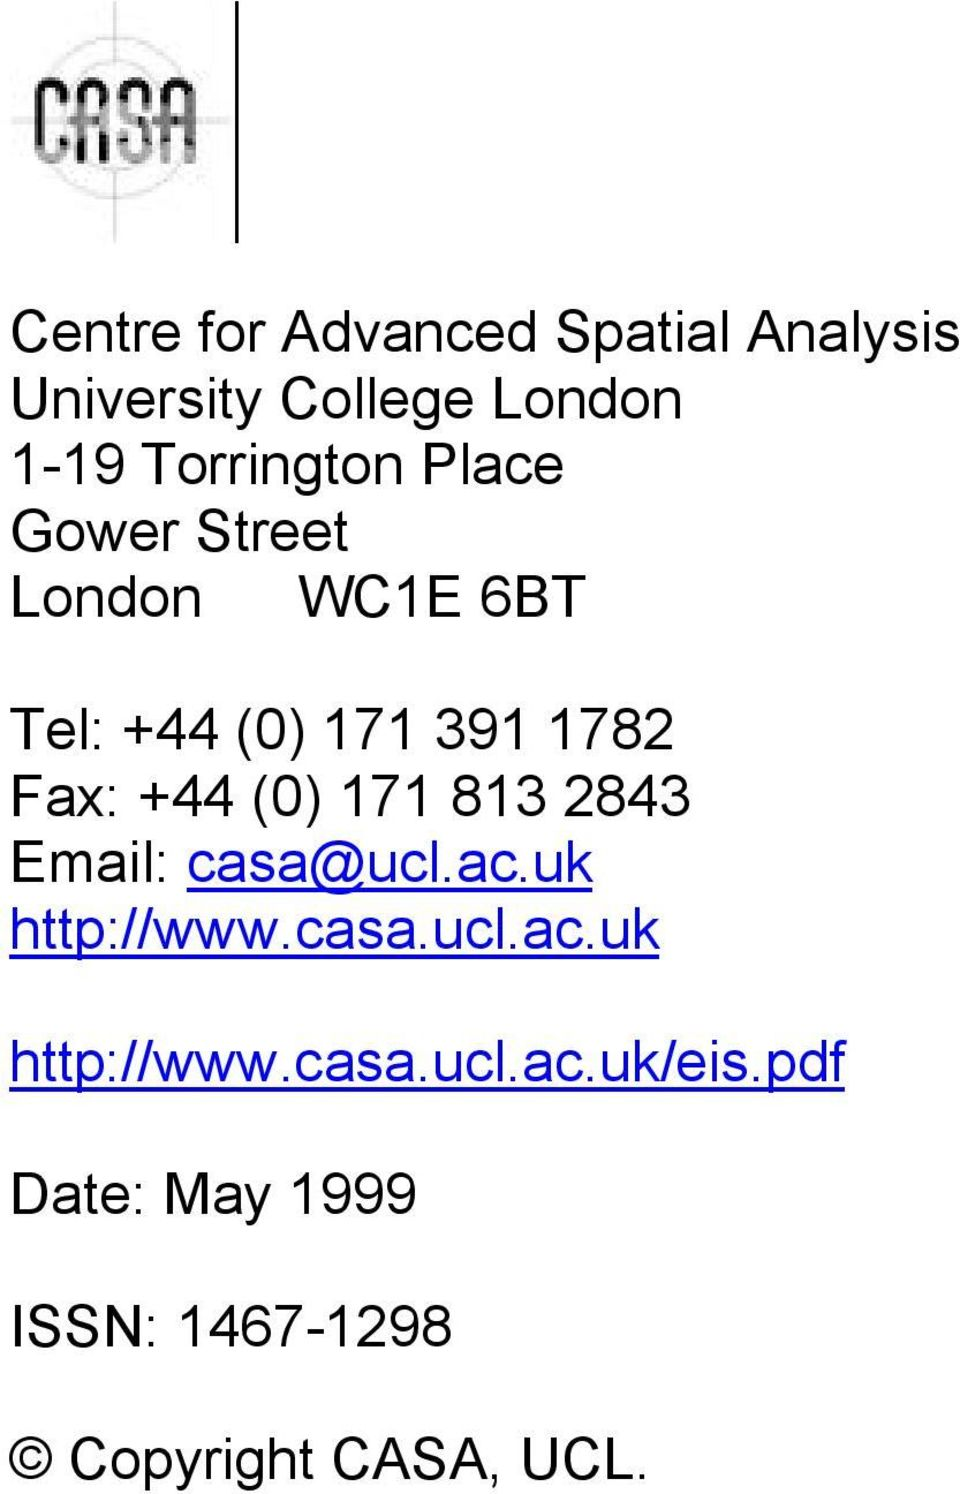 Fax: +44 (0) 171 813 2843 Email: casa@ucl.ac.uk http://www.casa.ucl.ac.uk http://www.casa.ucl.ac.uk/eis.